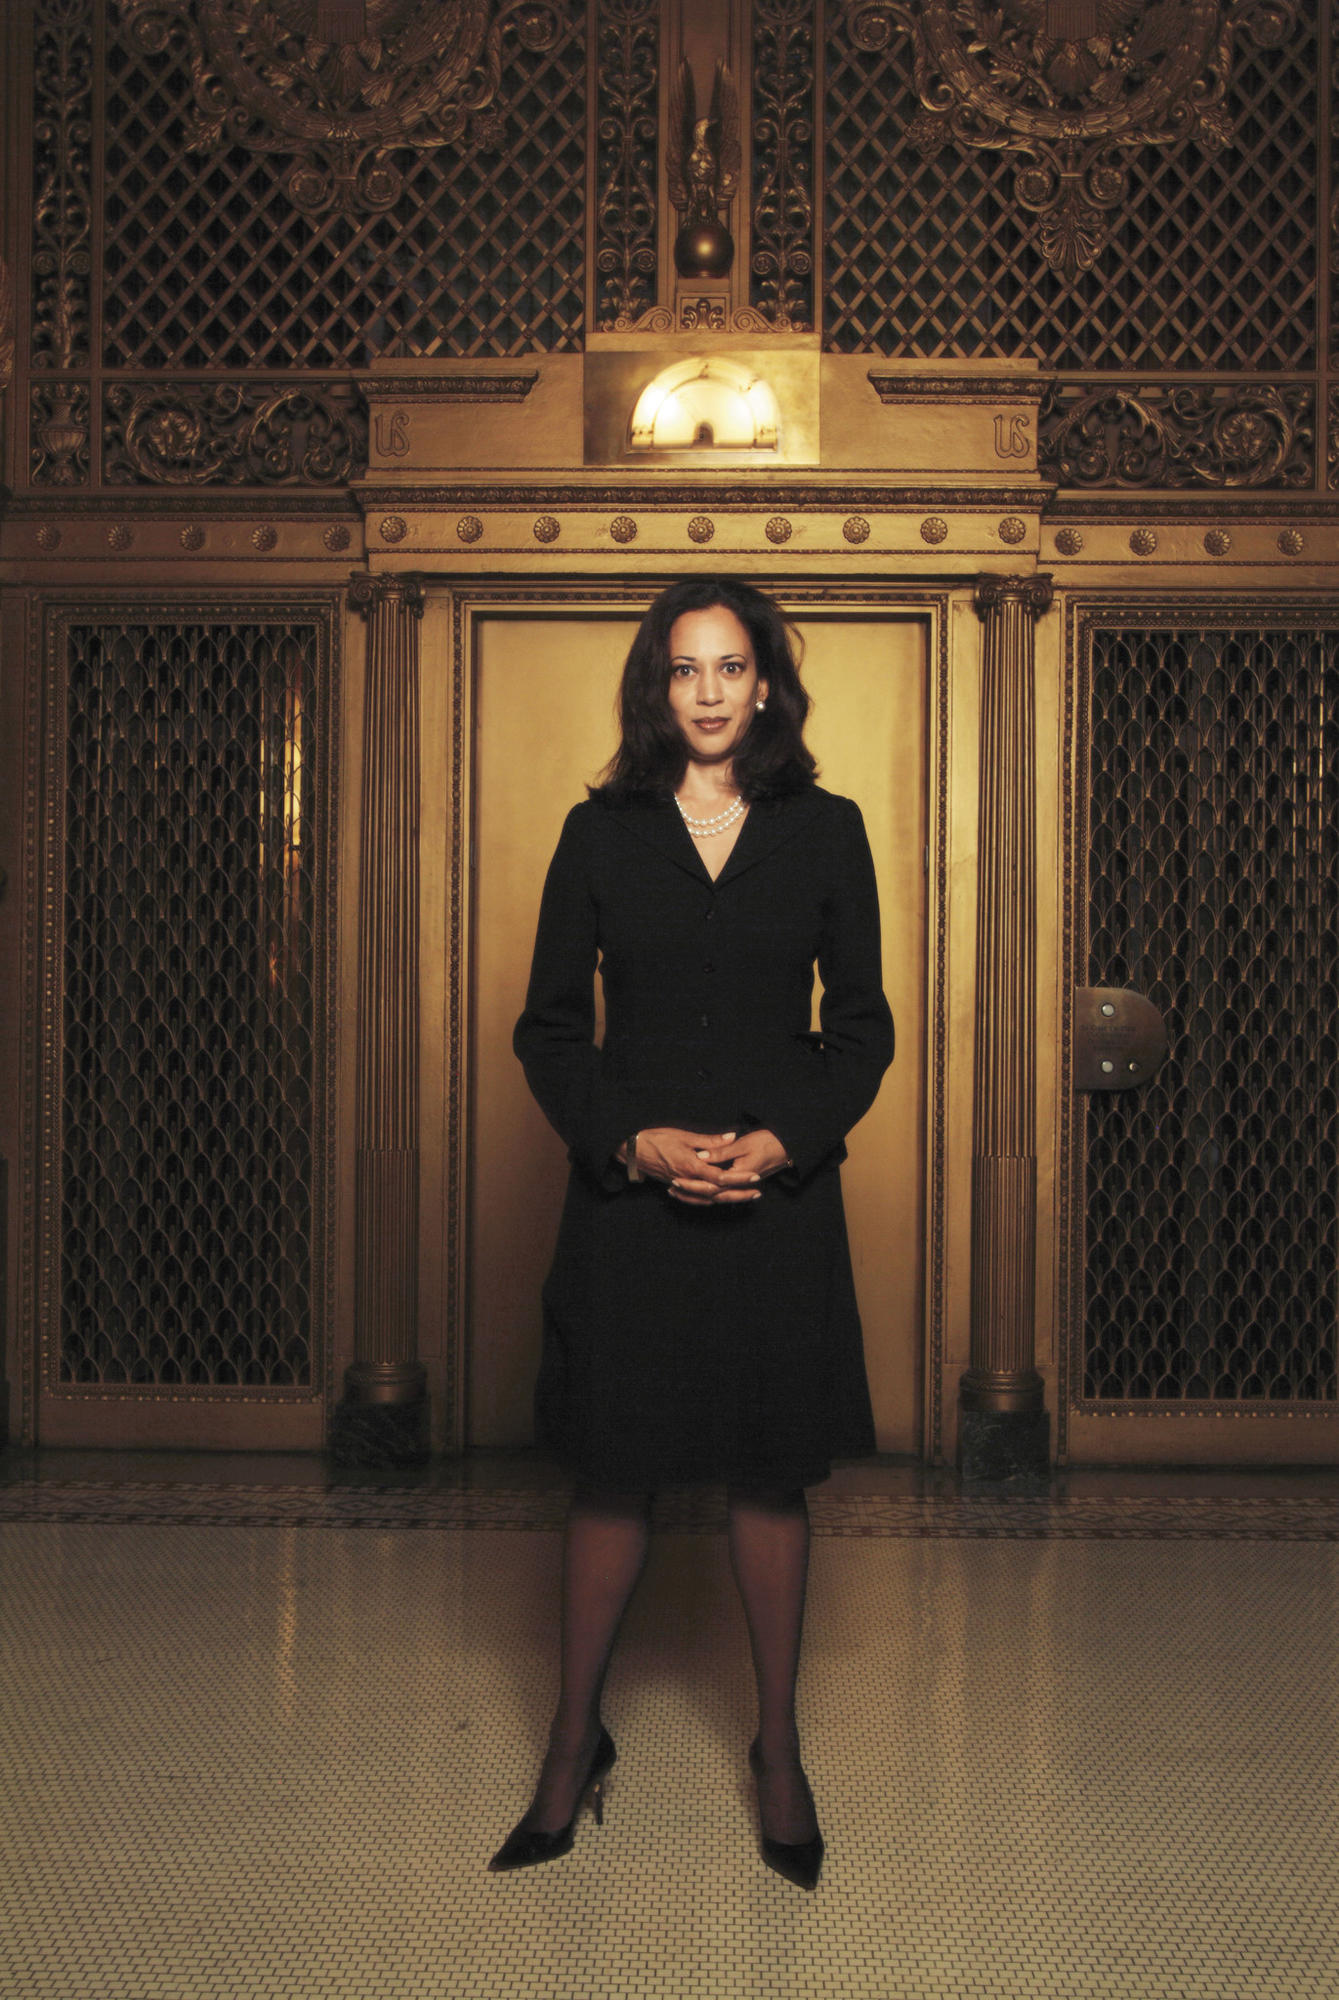 Kamala Harris in 2004, the newly elected San Francisco District Attorney.